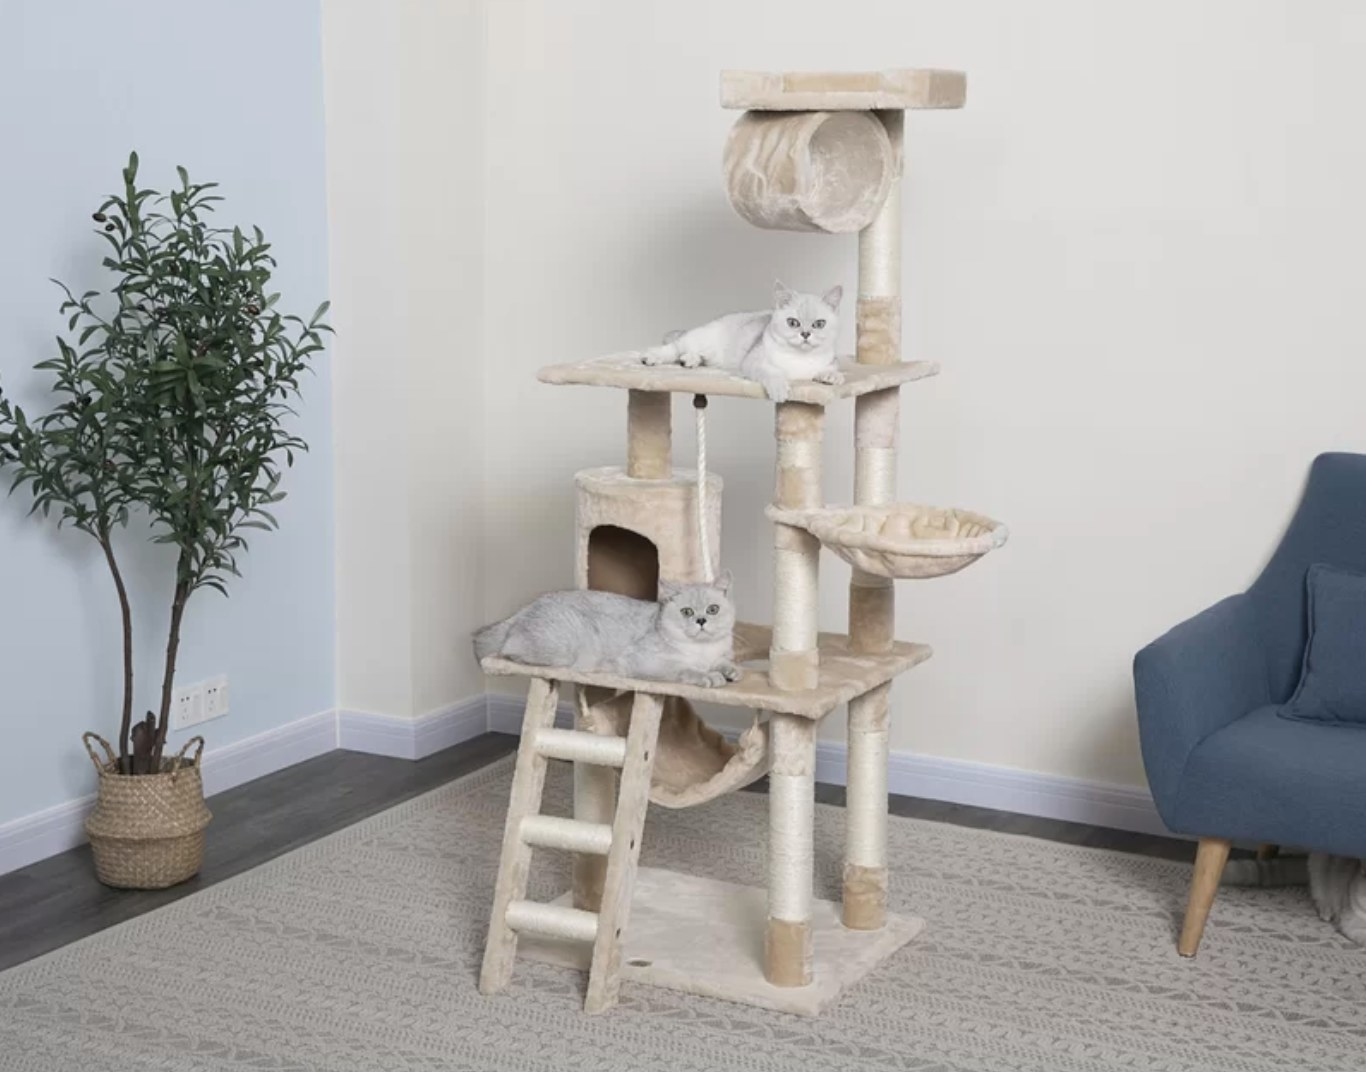 The cat tree in beige with two white cats sitting on it